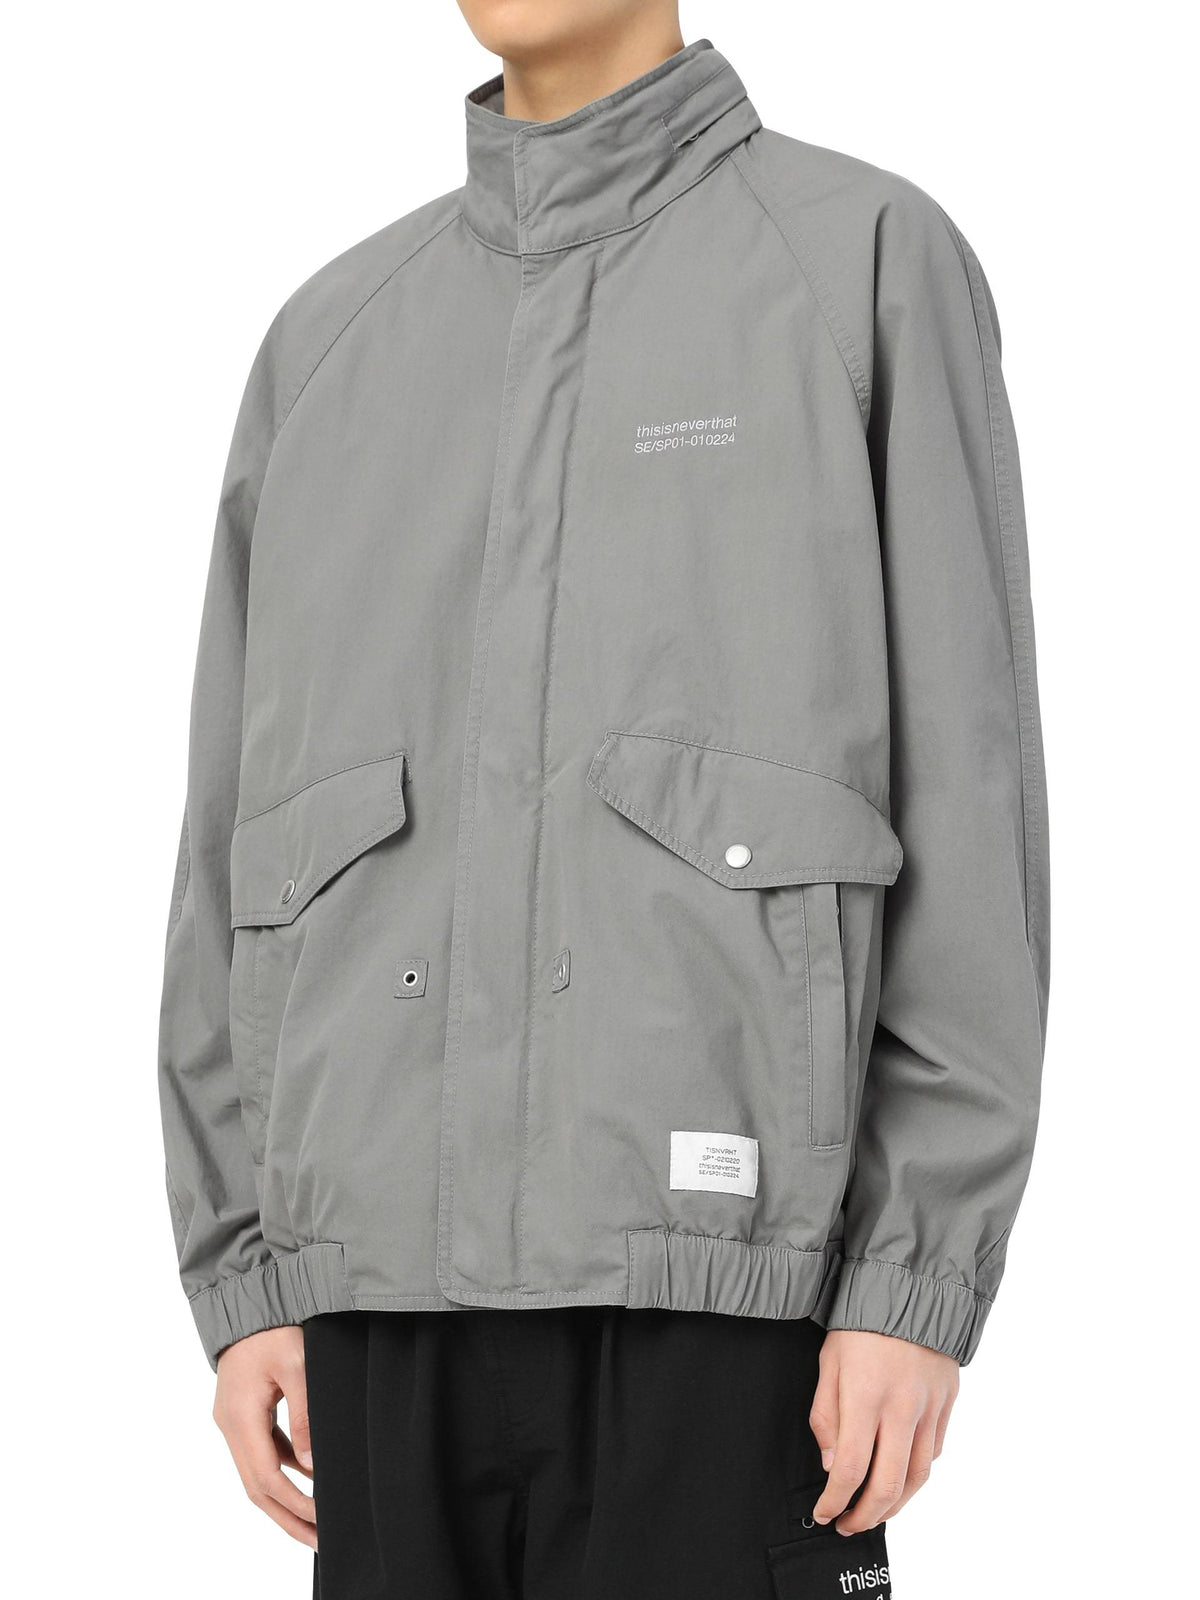 Mil Jacket Outerwear